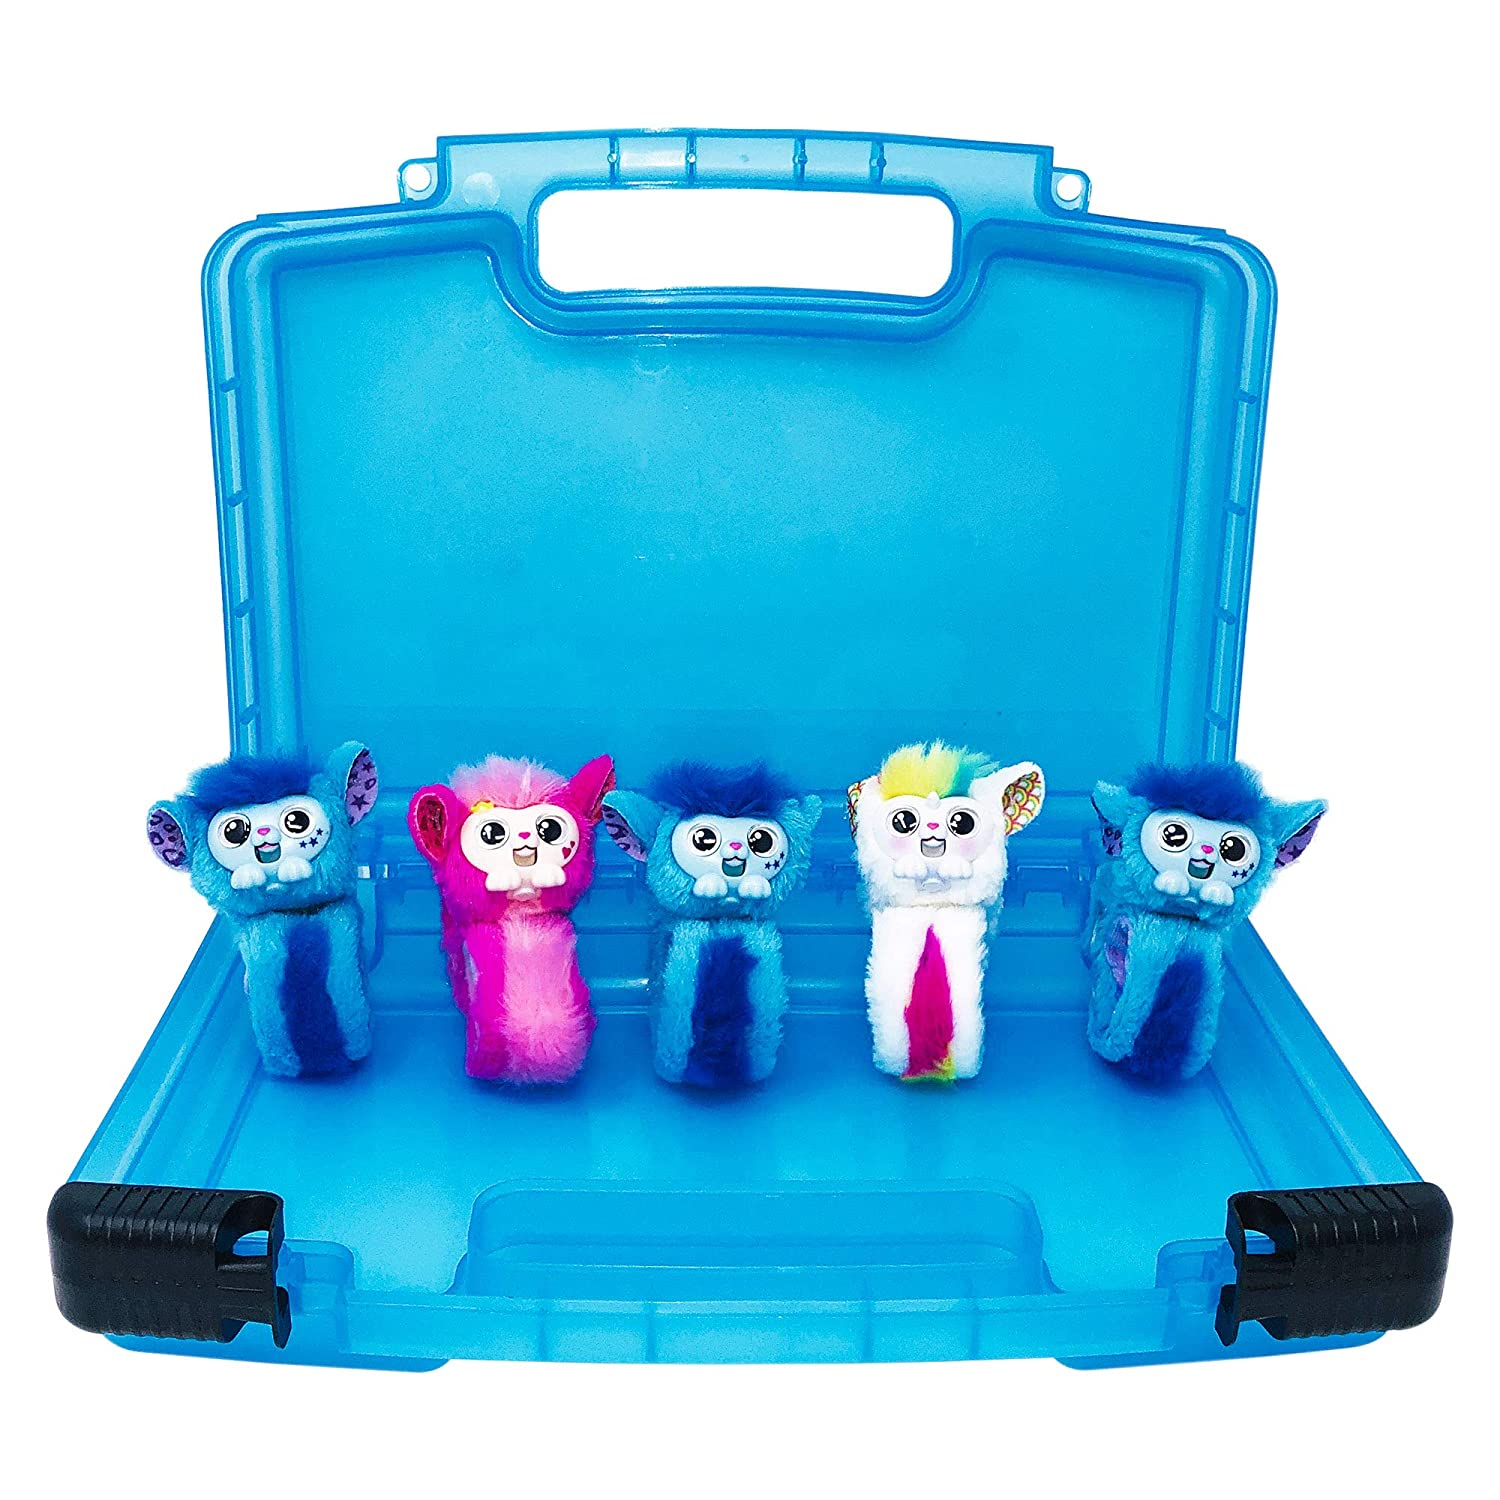 Life Made Better Carrying Case for Wristband Toys Compatible with Live Little Wrapples. This Box is Not Created by Live Little Wrapples Blue